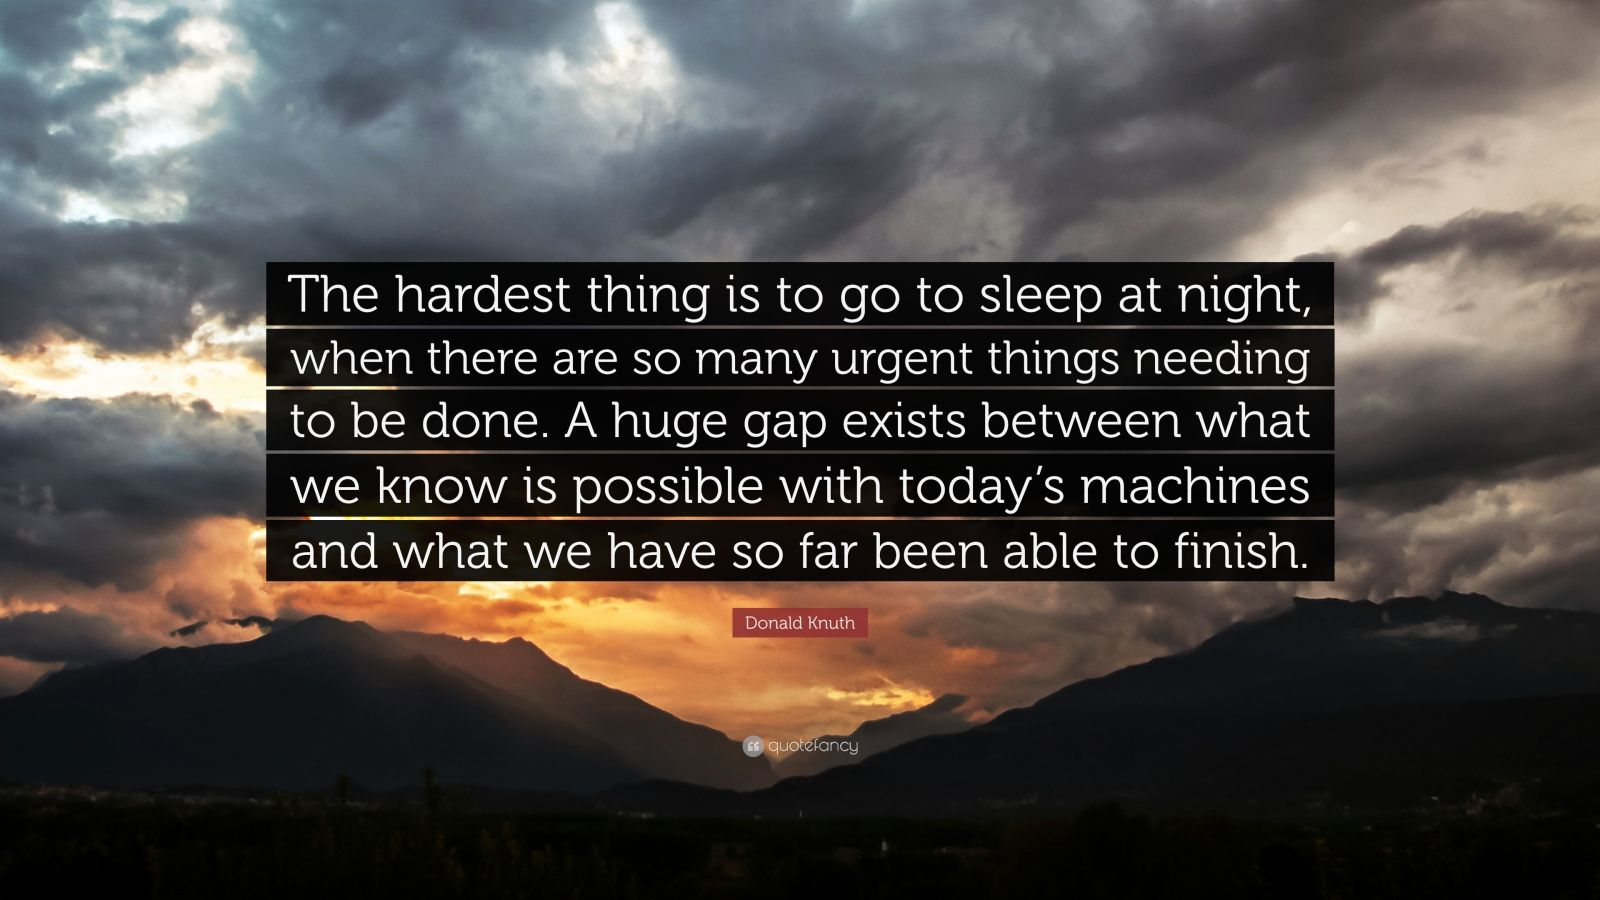 """Donald Knuth Quote: """"The hardest thing is to go to sleep at night, when there are so many urgent things needing to be done. A huge gap exists between what we know is possible with today's machines and what we have so far been able to finish."""""""